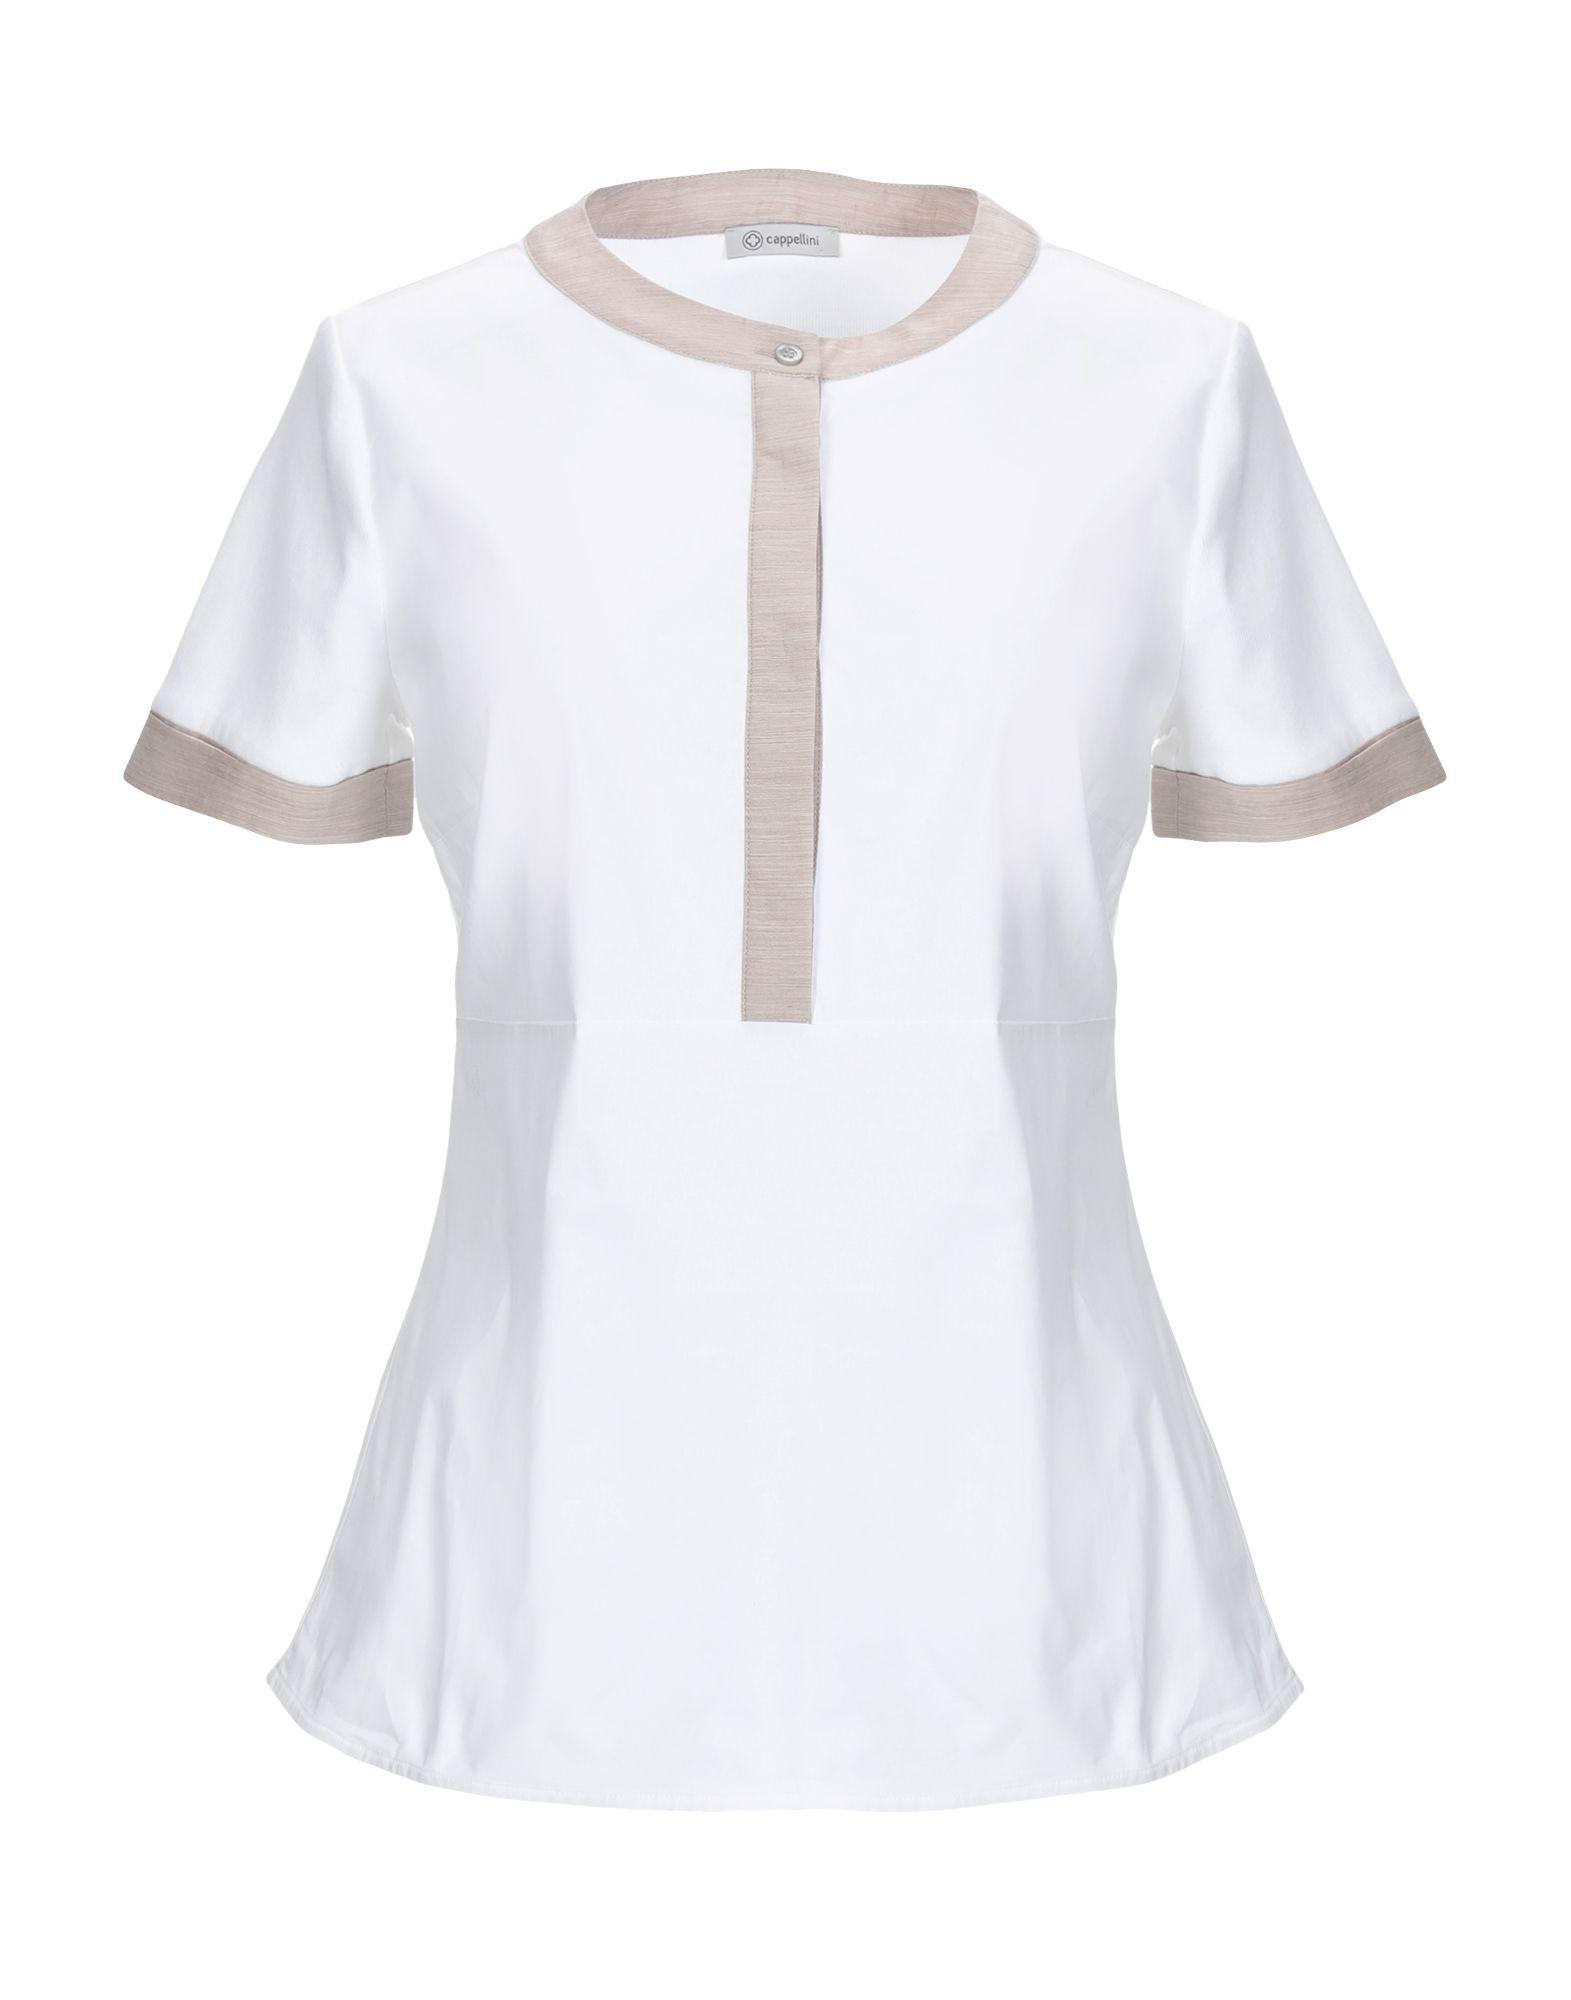 9d11f0b9265a6 Lyst - Cappellini By Peserico Shirt in White